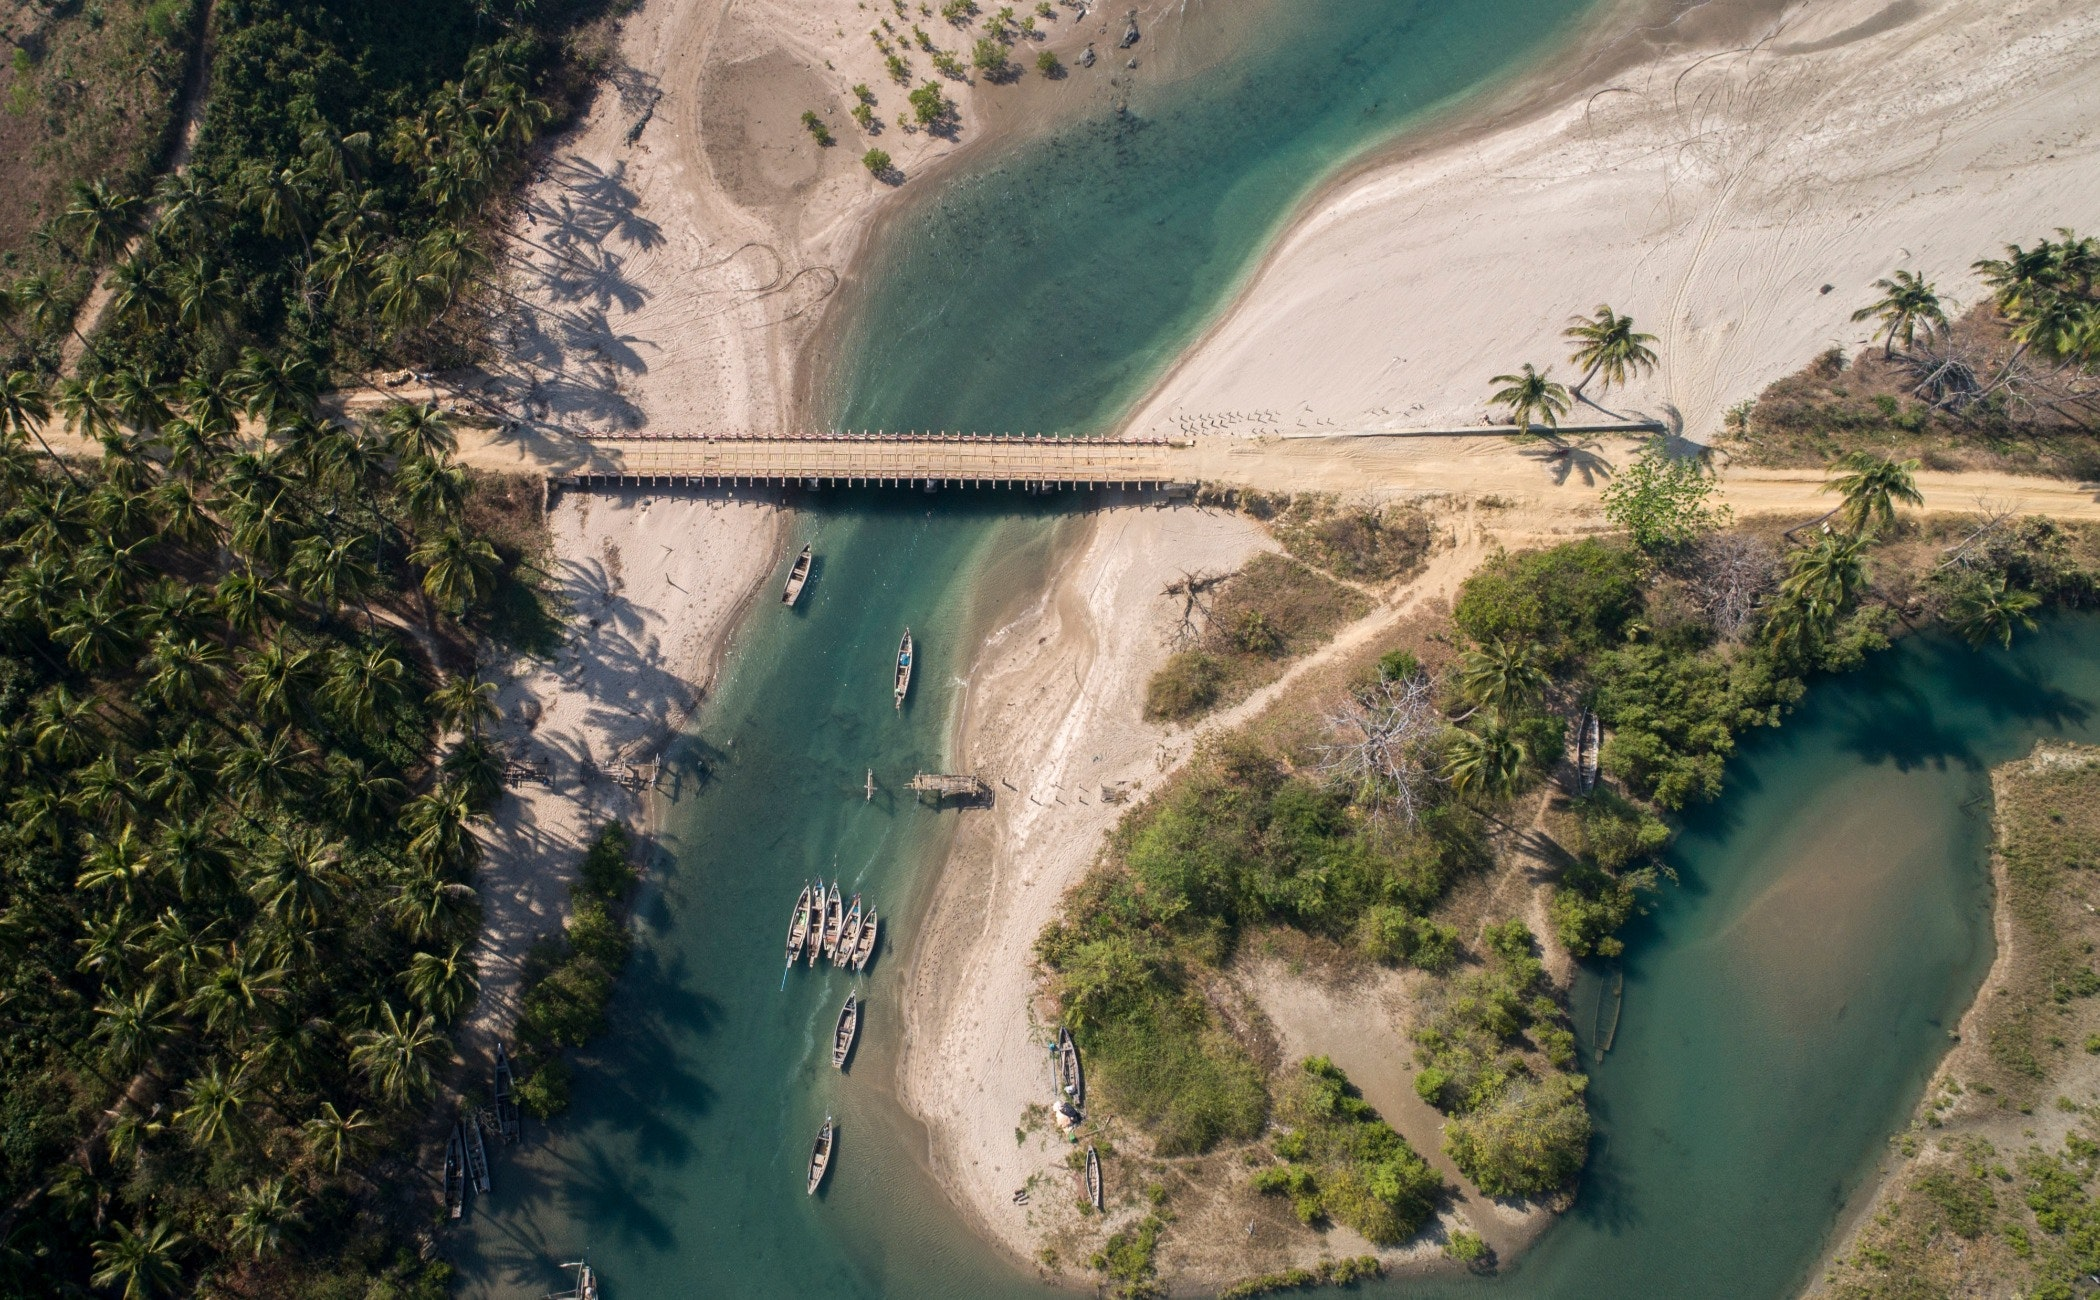 landscape,nature,outdoors,scenery,water,river,aerial view